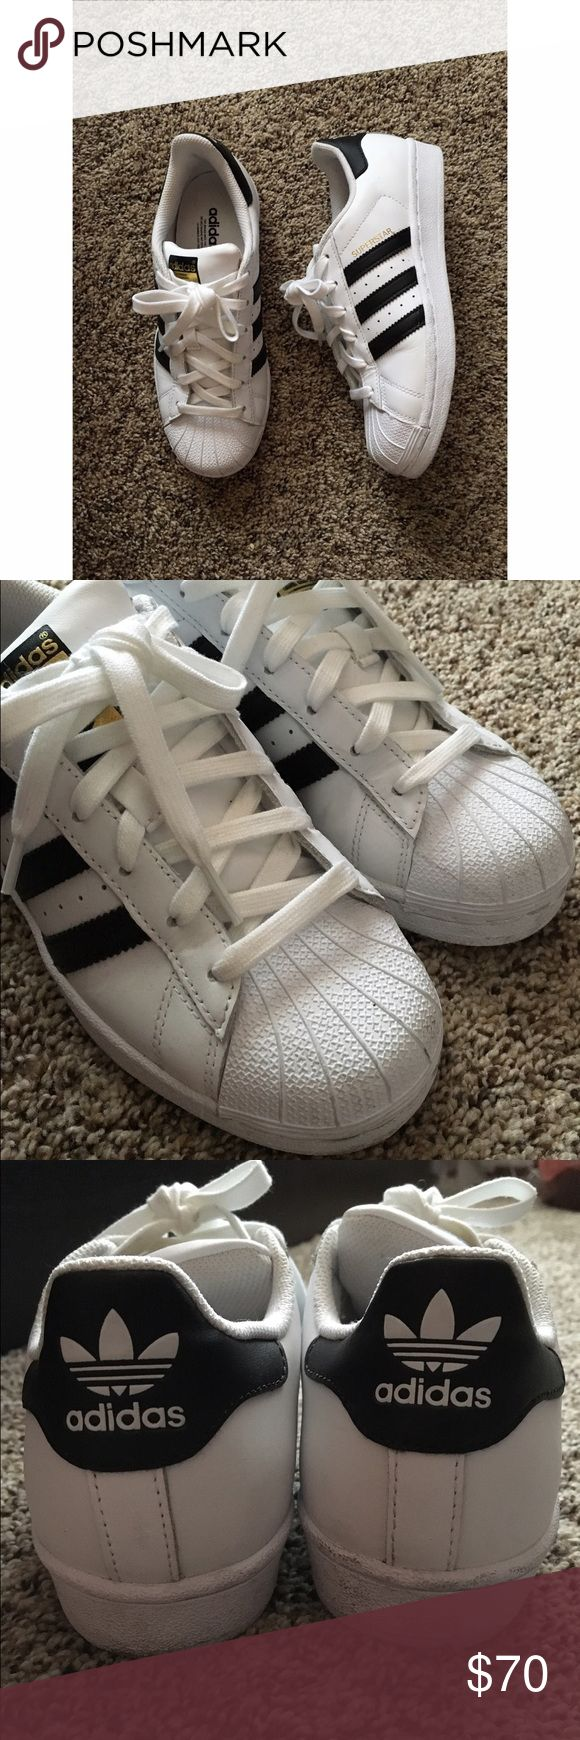 Adidas Originals Superstar Toe Shell Worn only once, basically new. All white with black stripes. Only slight crease on the toe part. Will clean before sending out~ Adidas Shoes Sneakers